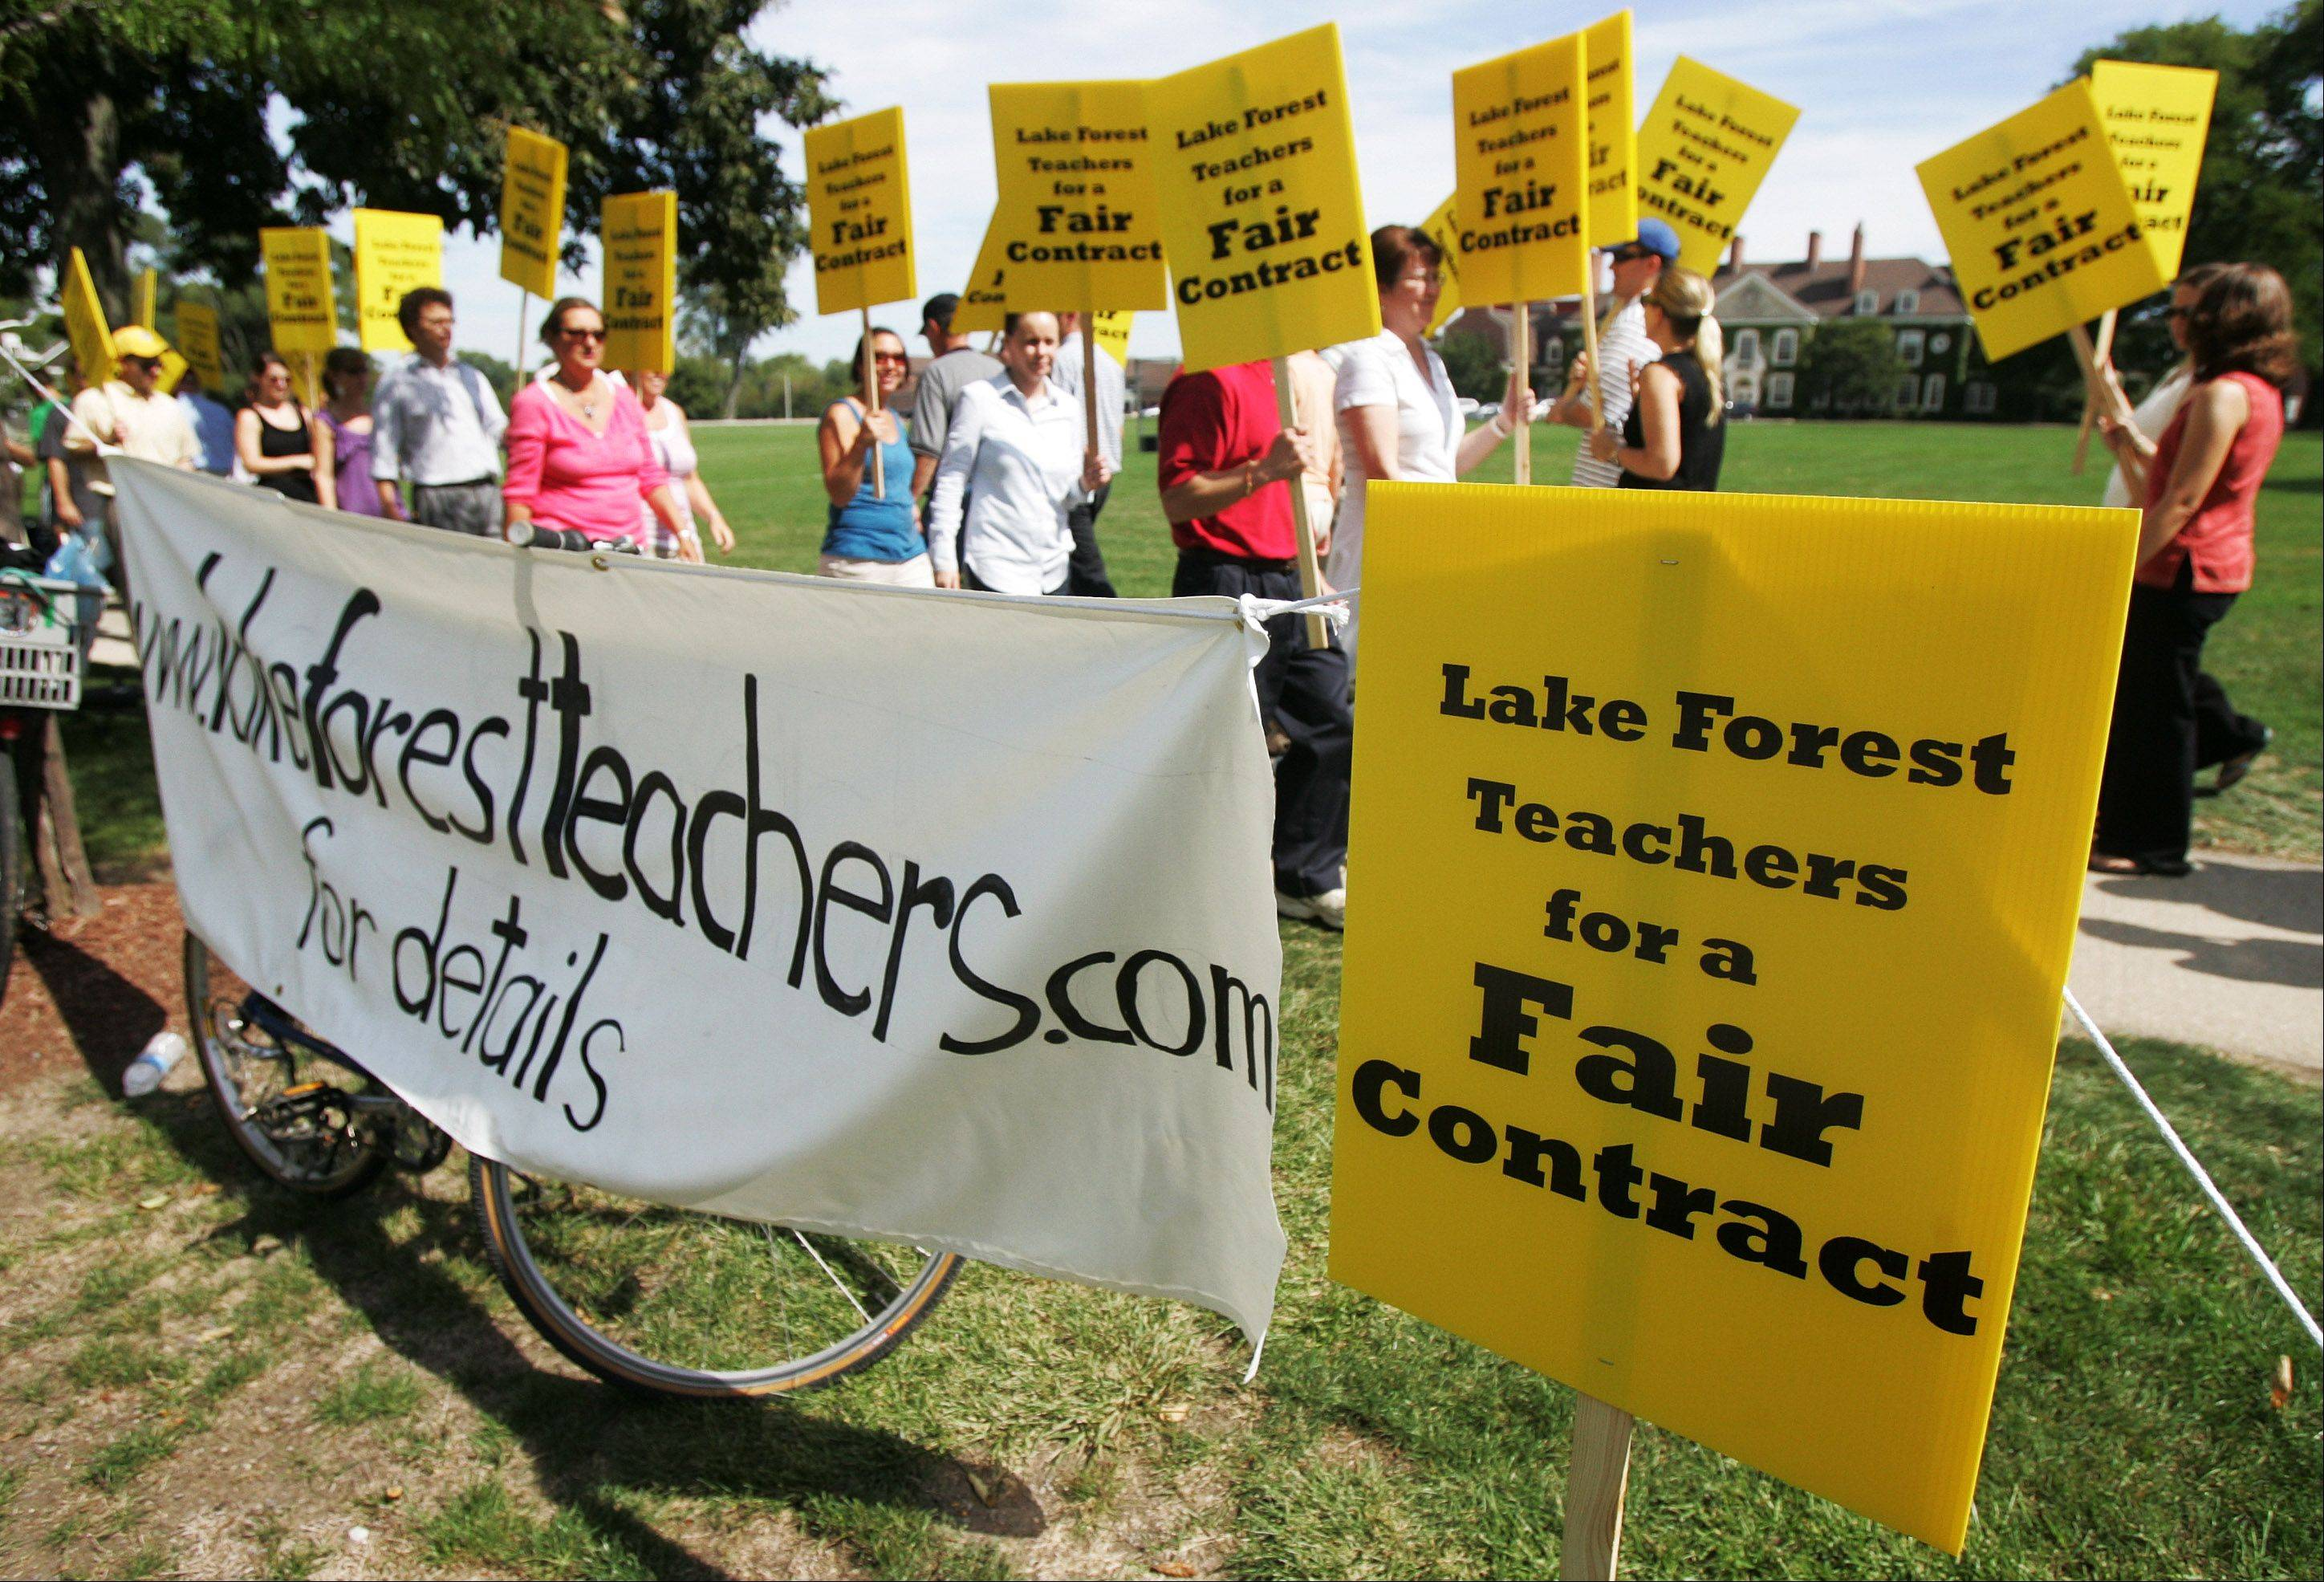 Lake Forest High School teachers picket Wednesday on the first day of their strike. Lake Forest District 115 contends the instructors are making unreasonable demands in light of a shaky economy.